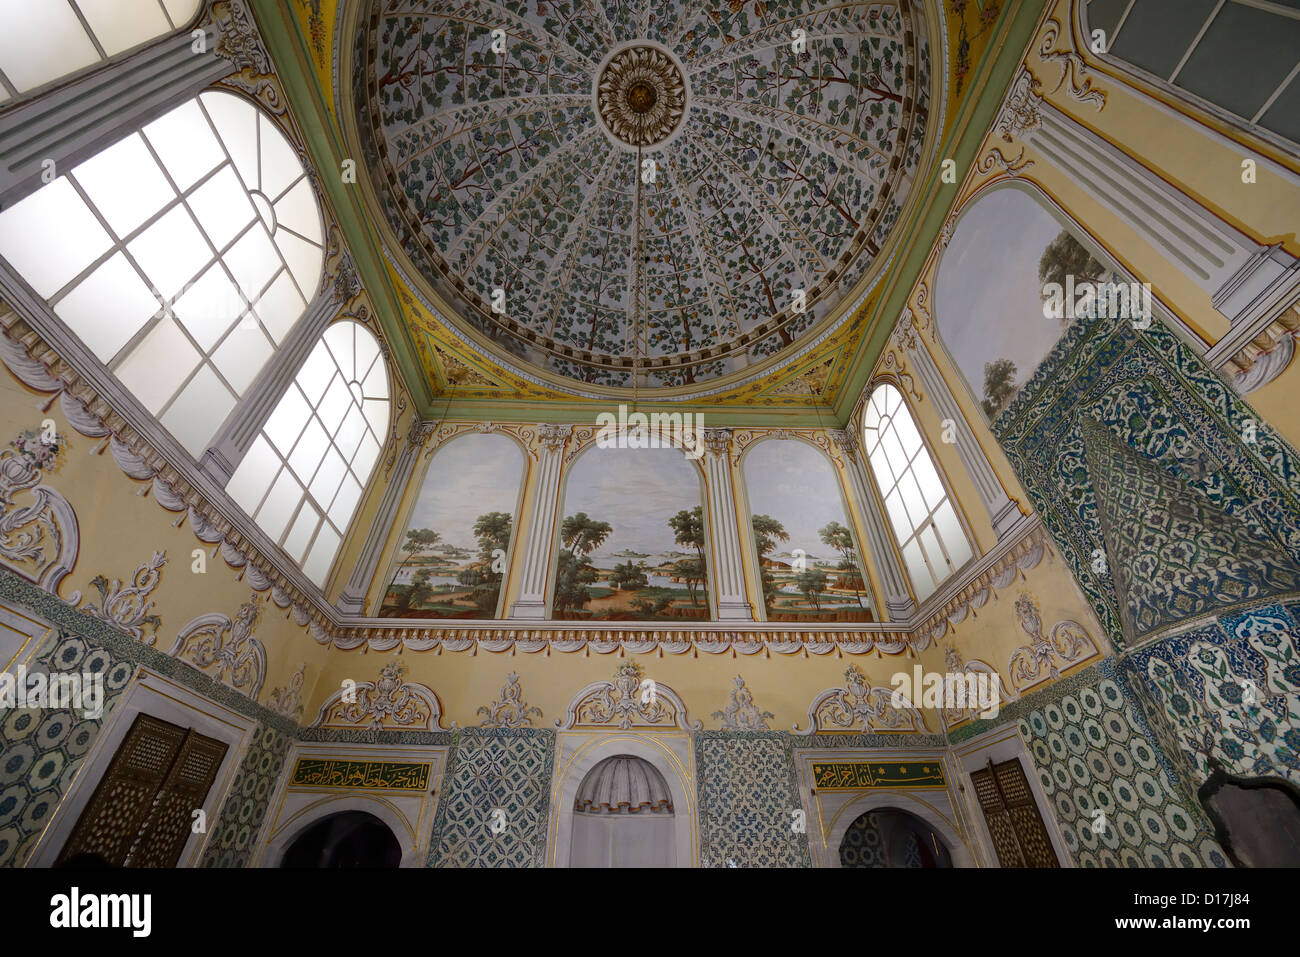 Reception Hall of the Dowager Sultan apartments of the Queen Mother Topkapi Palace Istanbul Turkey - Stock Image